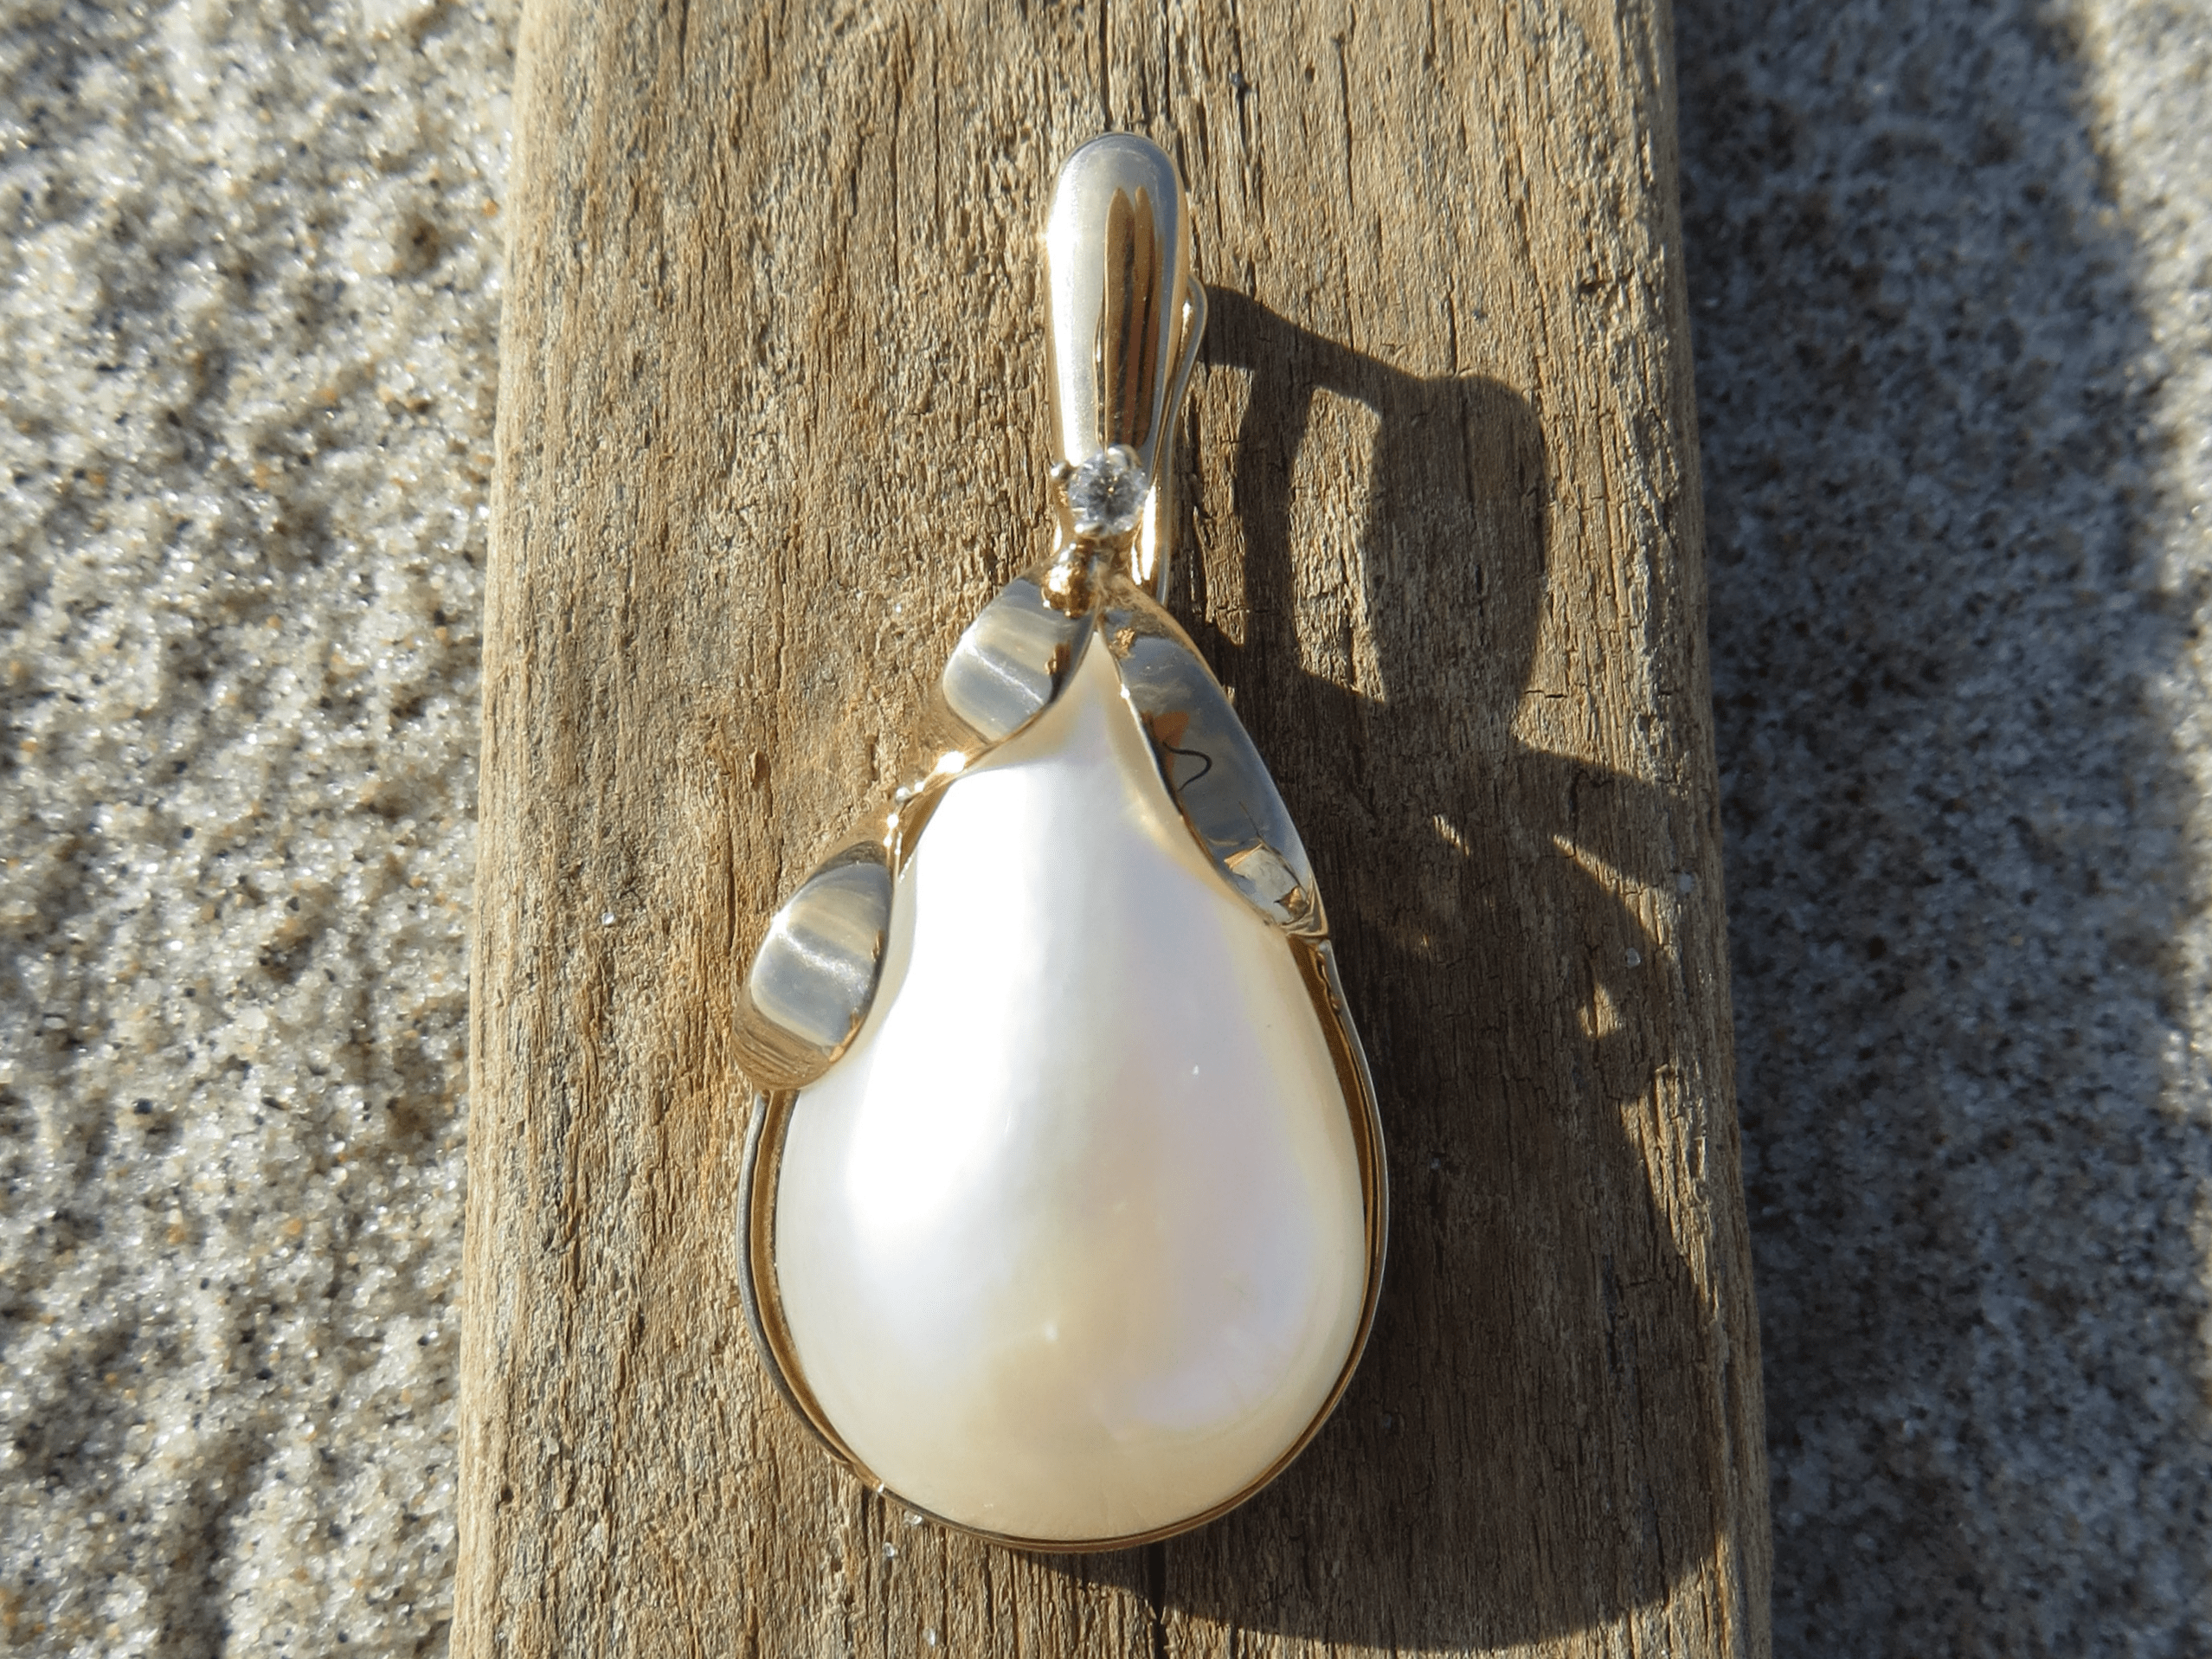 Mabe Pearl, Mabe Pearls, Diamond, Pearl, Pearls, Pendant, Pendants, Necklace, Necklaces, 14Kt Gold, 14Kt Yellow Gold, Yellow Gold, Providence, Jewelry Store, Jewelry, Jeweler, Platinum, Gold, Diamonds, Engagement, Wedding, Hegeman & Co.